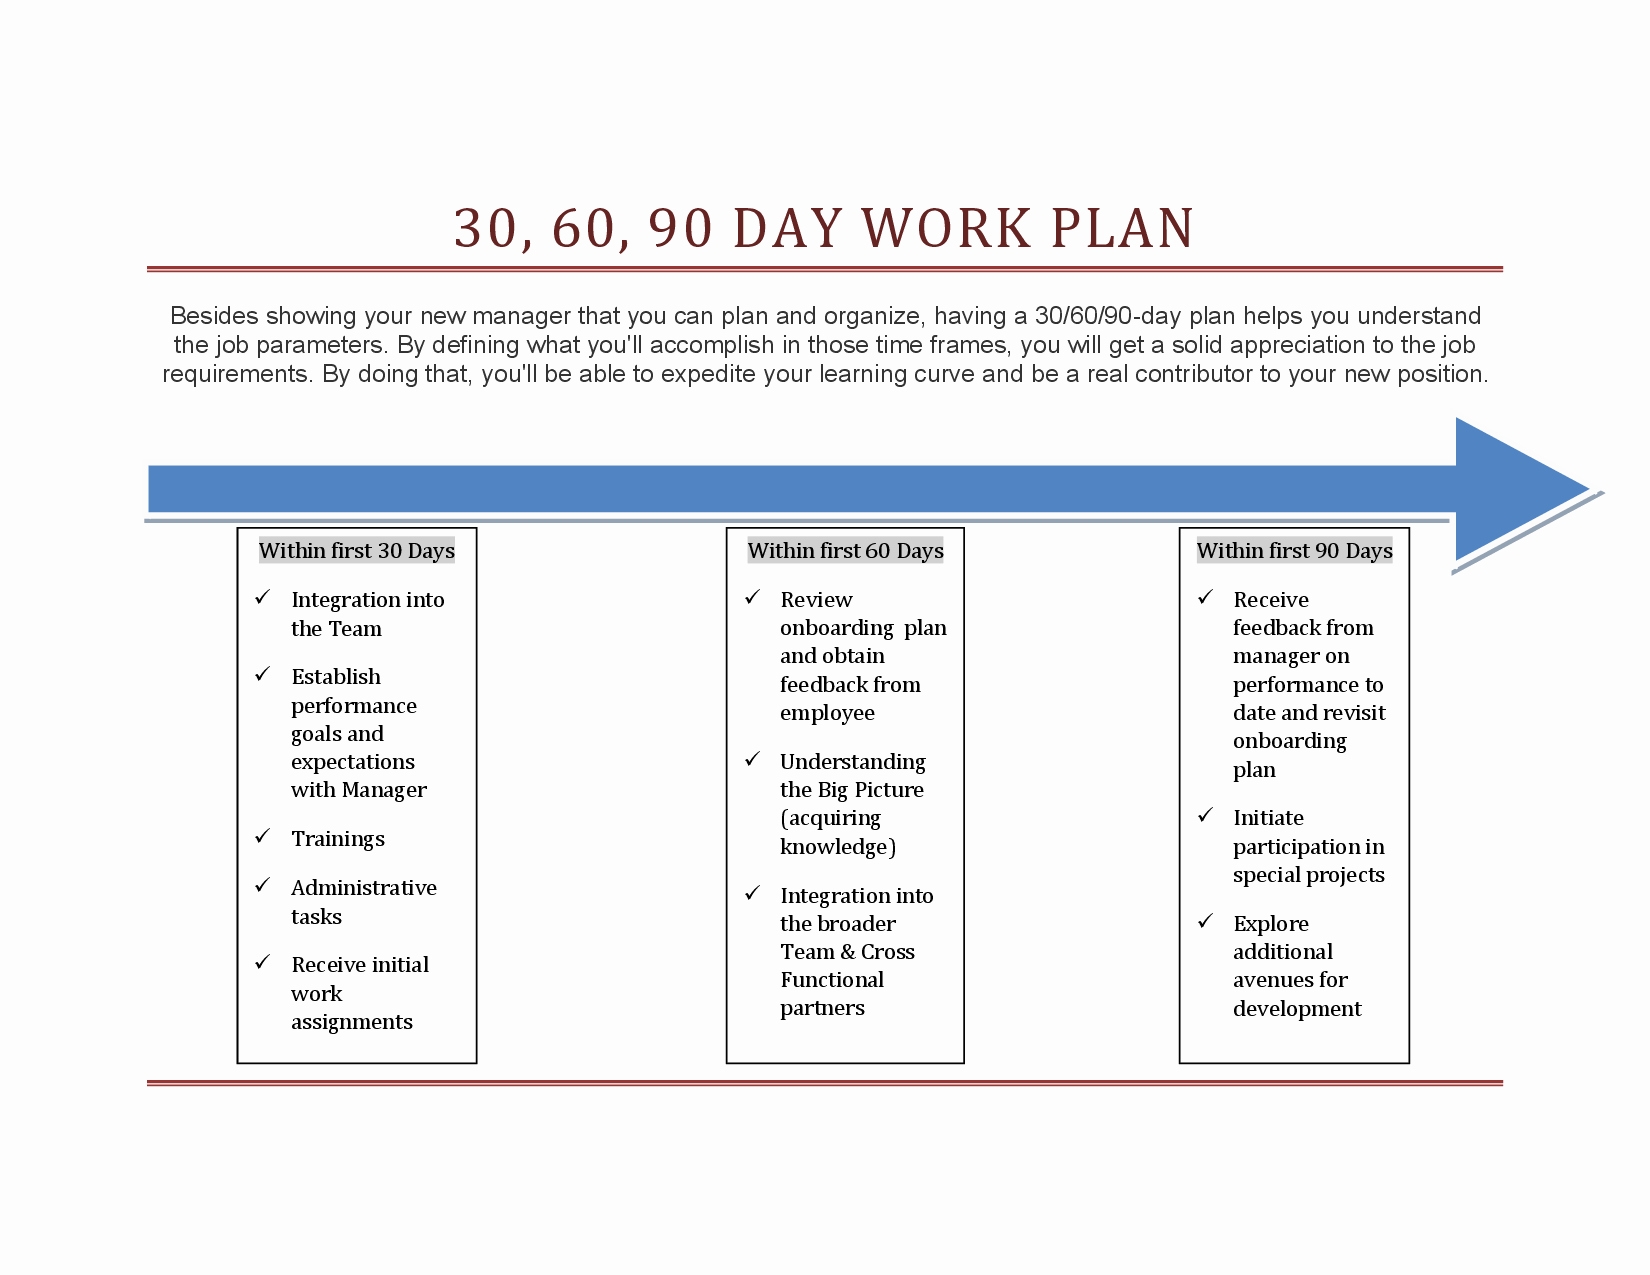 90 Day Action Plan Template Elegant 30 60 90 Days Plan New Job Marketing Google Search